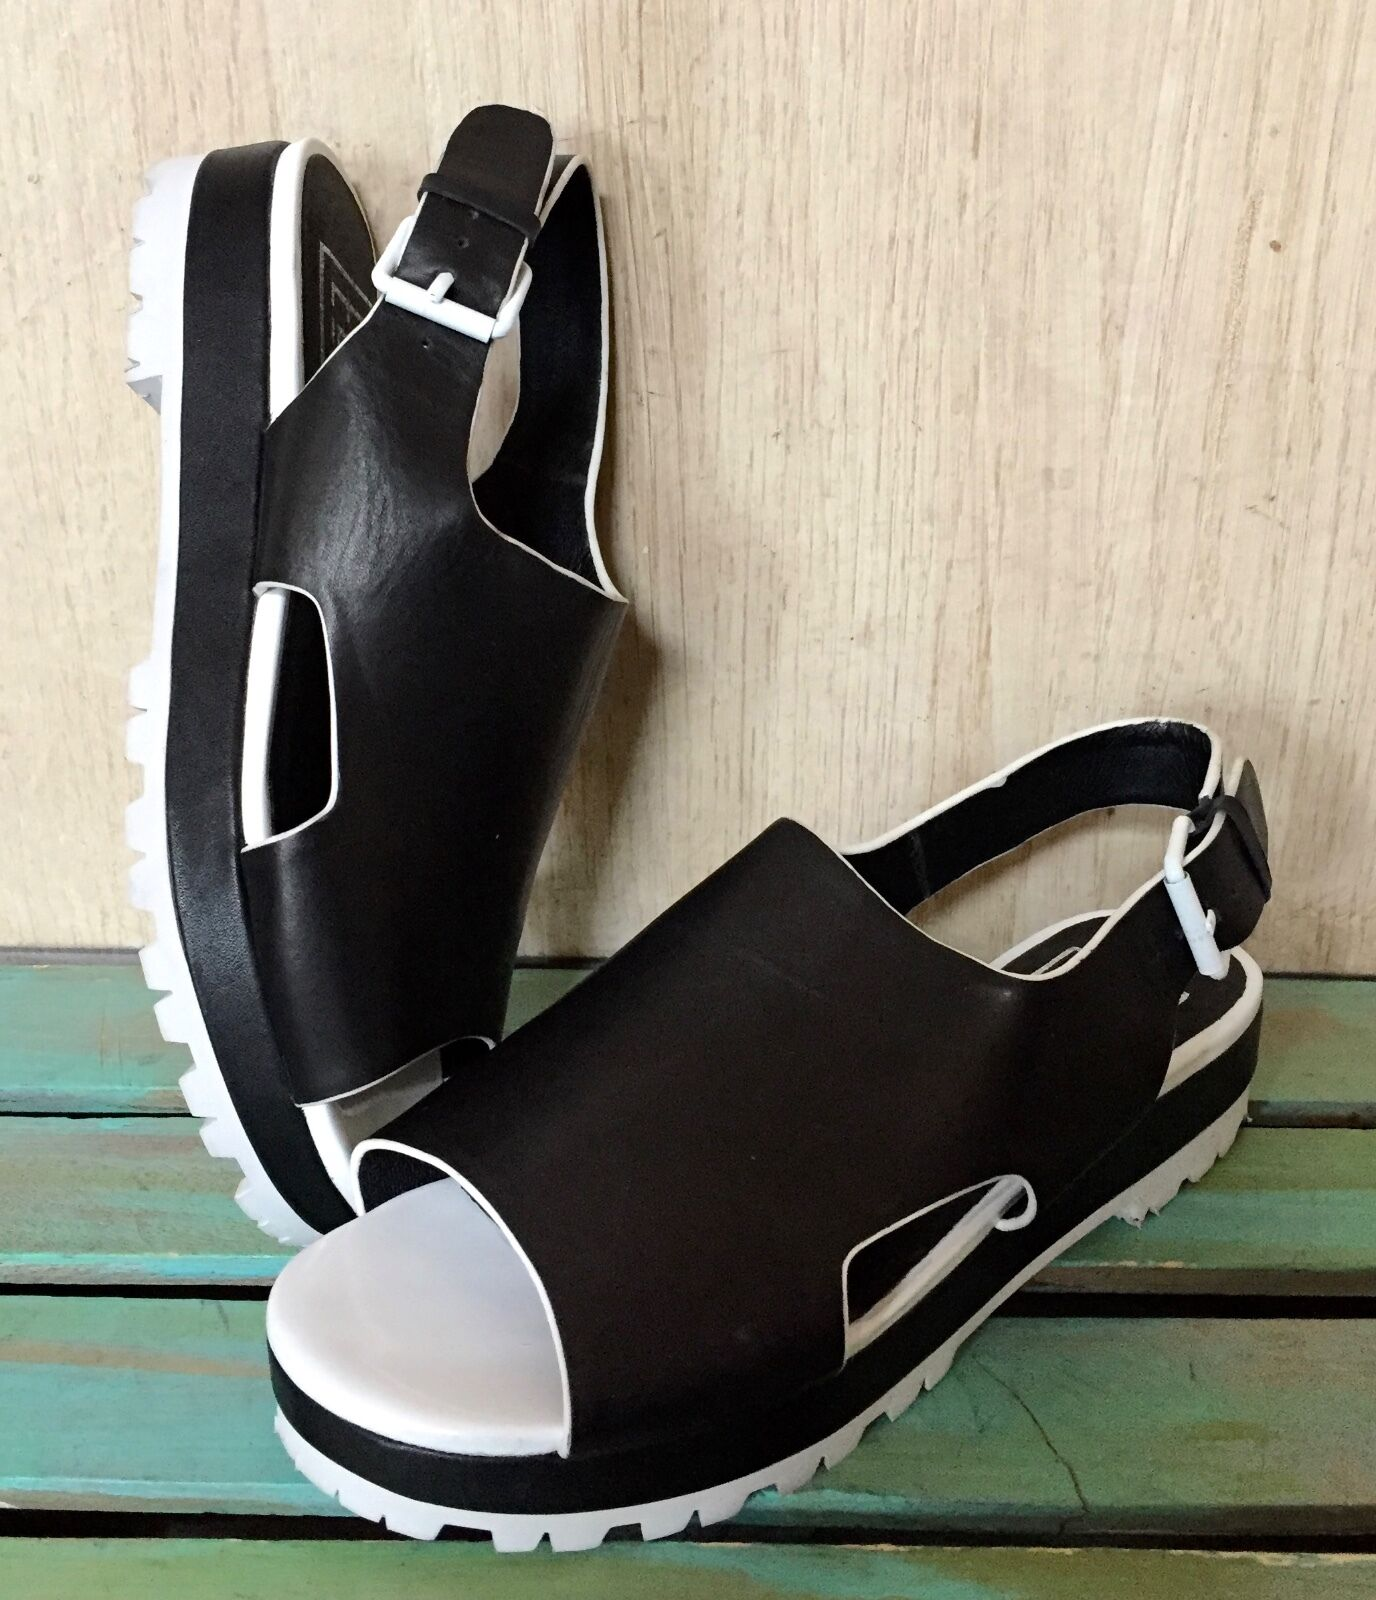 Man's/Woman's Helens Wedge Heart Black Wedge Helens with Bow Easy to clean surface New design Vintage tide shoes 6add0b